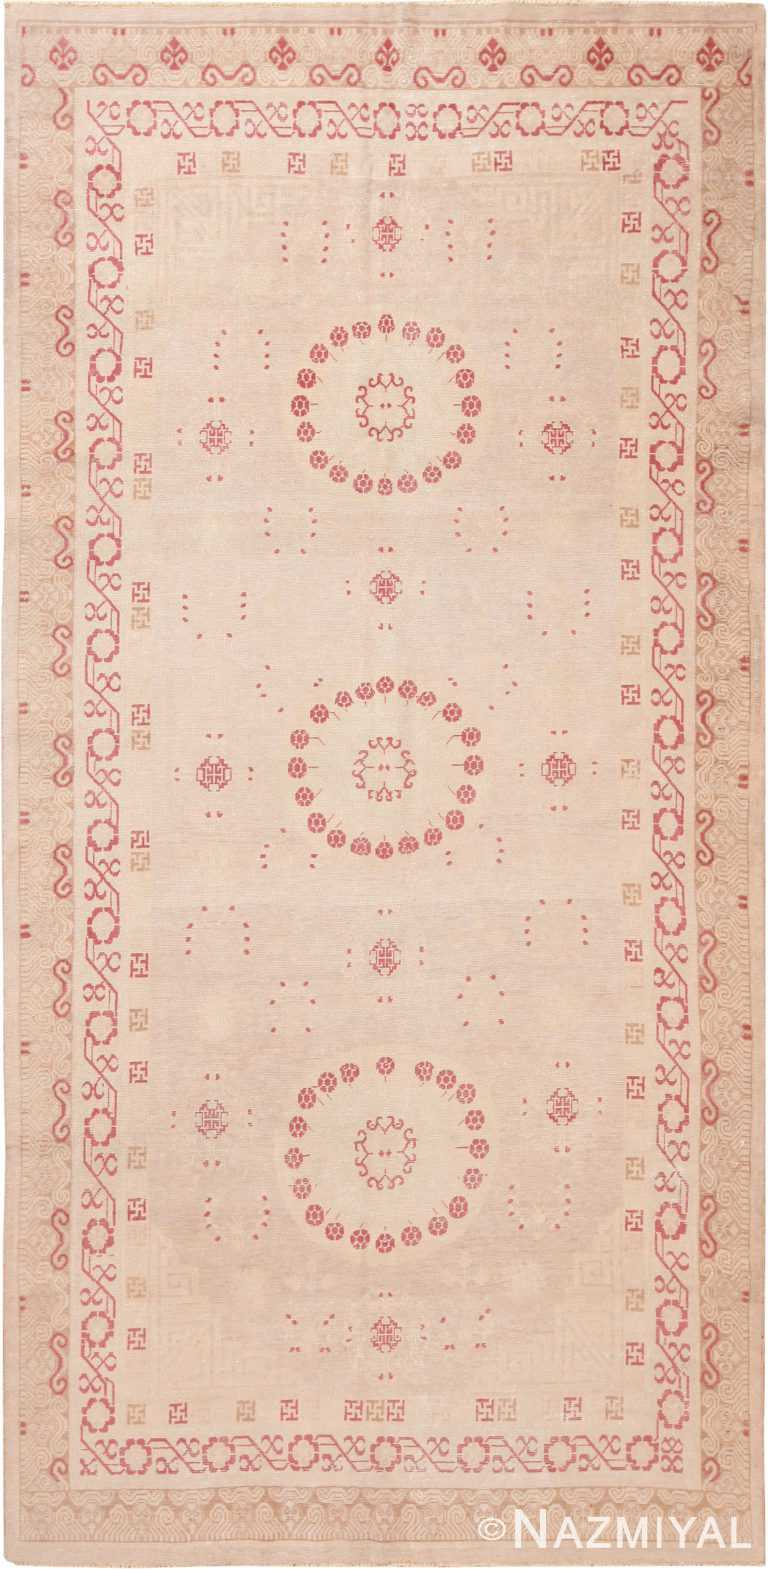 Gallery Size Decorative Antique Khotan Rug 42514 by Nazmiyal Antique Rugs